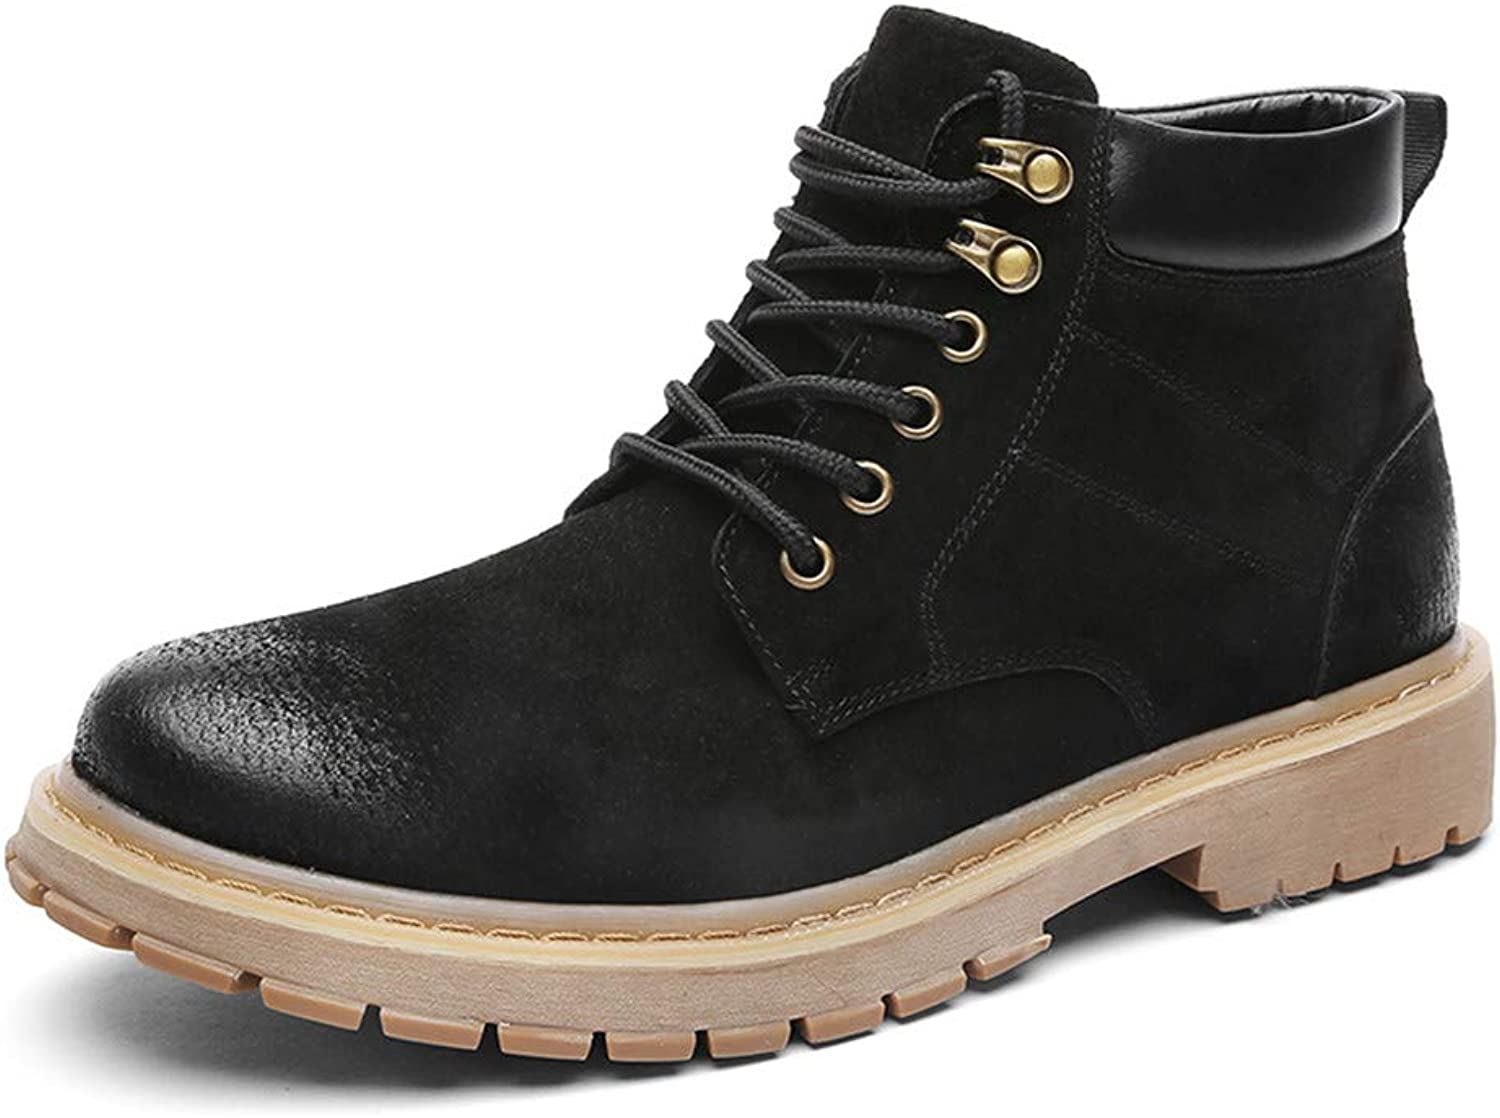 YAJIE-Boots, Men's Leisure Lace up Genuine leather Work Boots (color   Black, Size   7.5 UK)